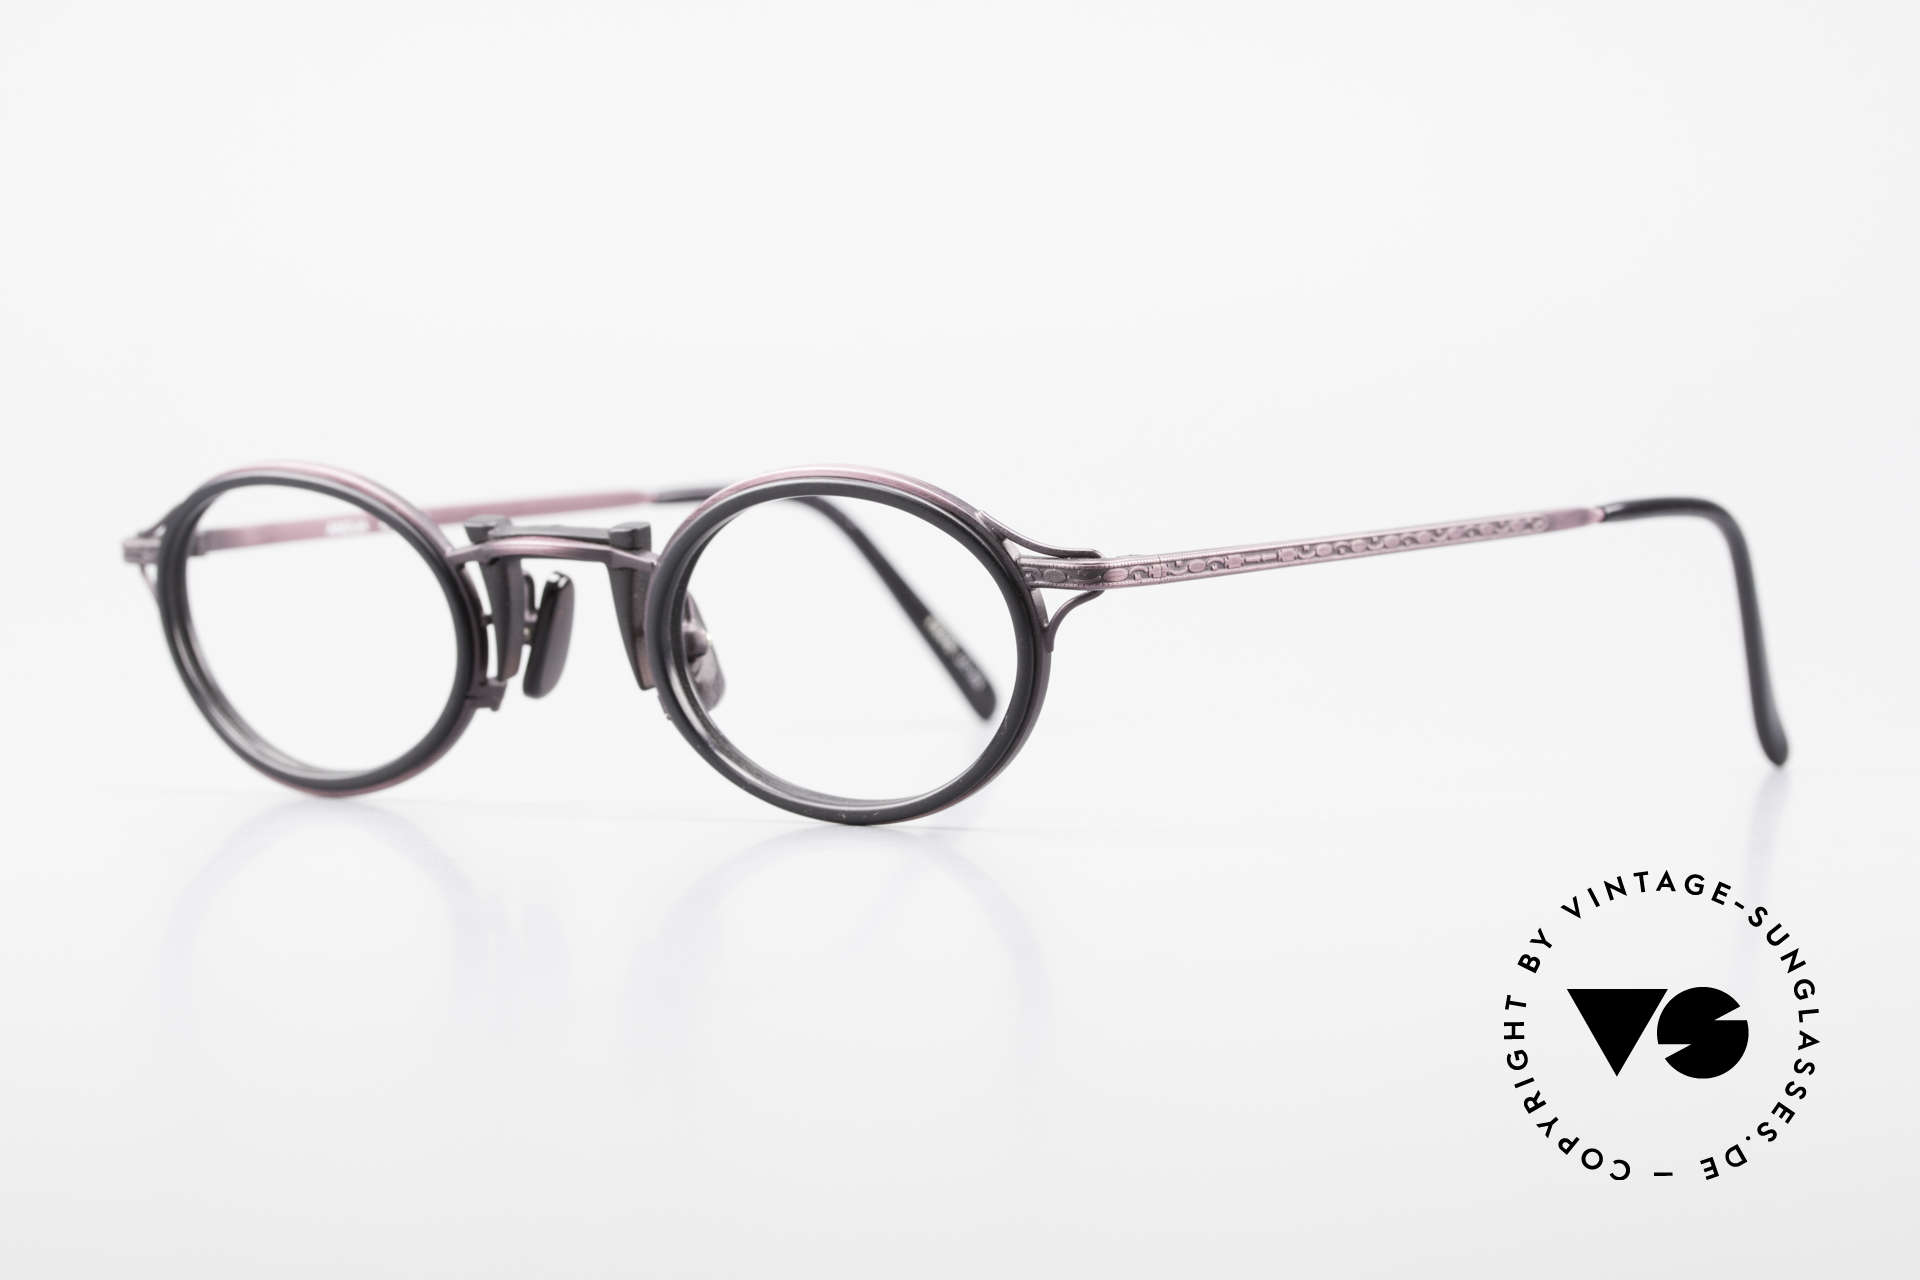 Freudenhaus Andua Oval 90's Designer Frame, great combination of materials (plastic & titanium), Made for Women